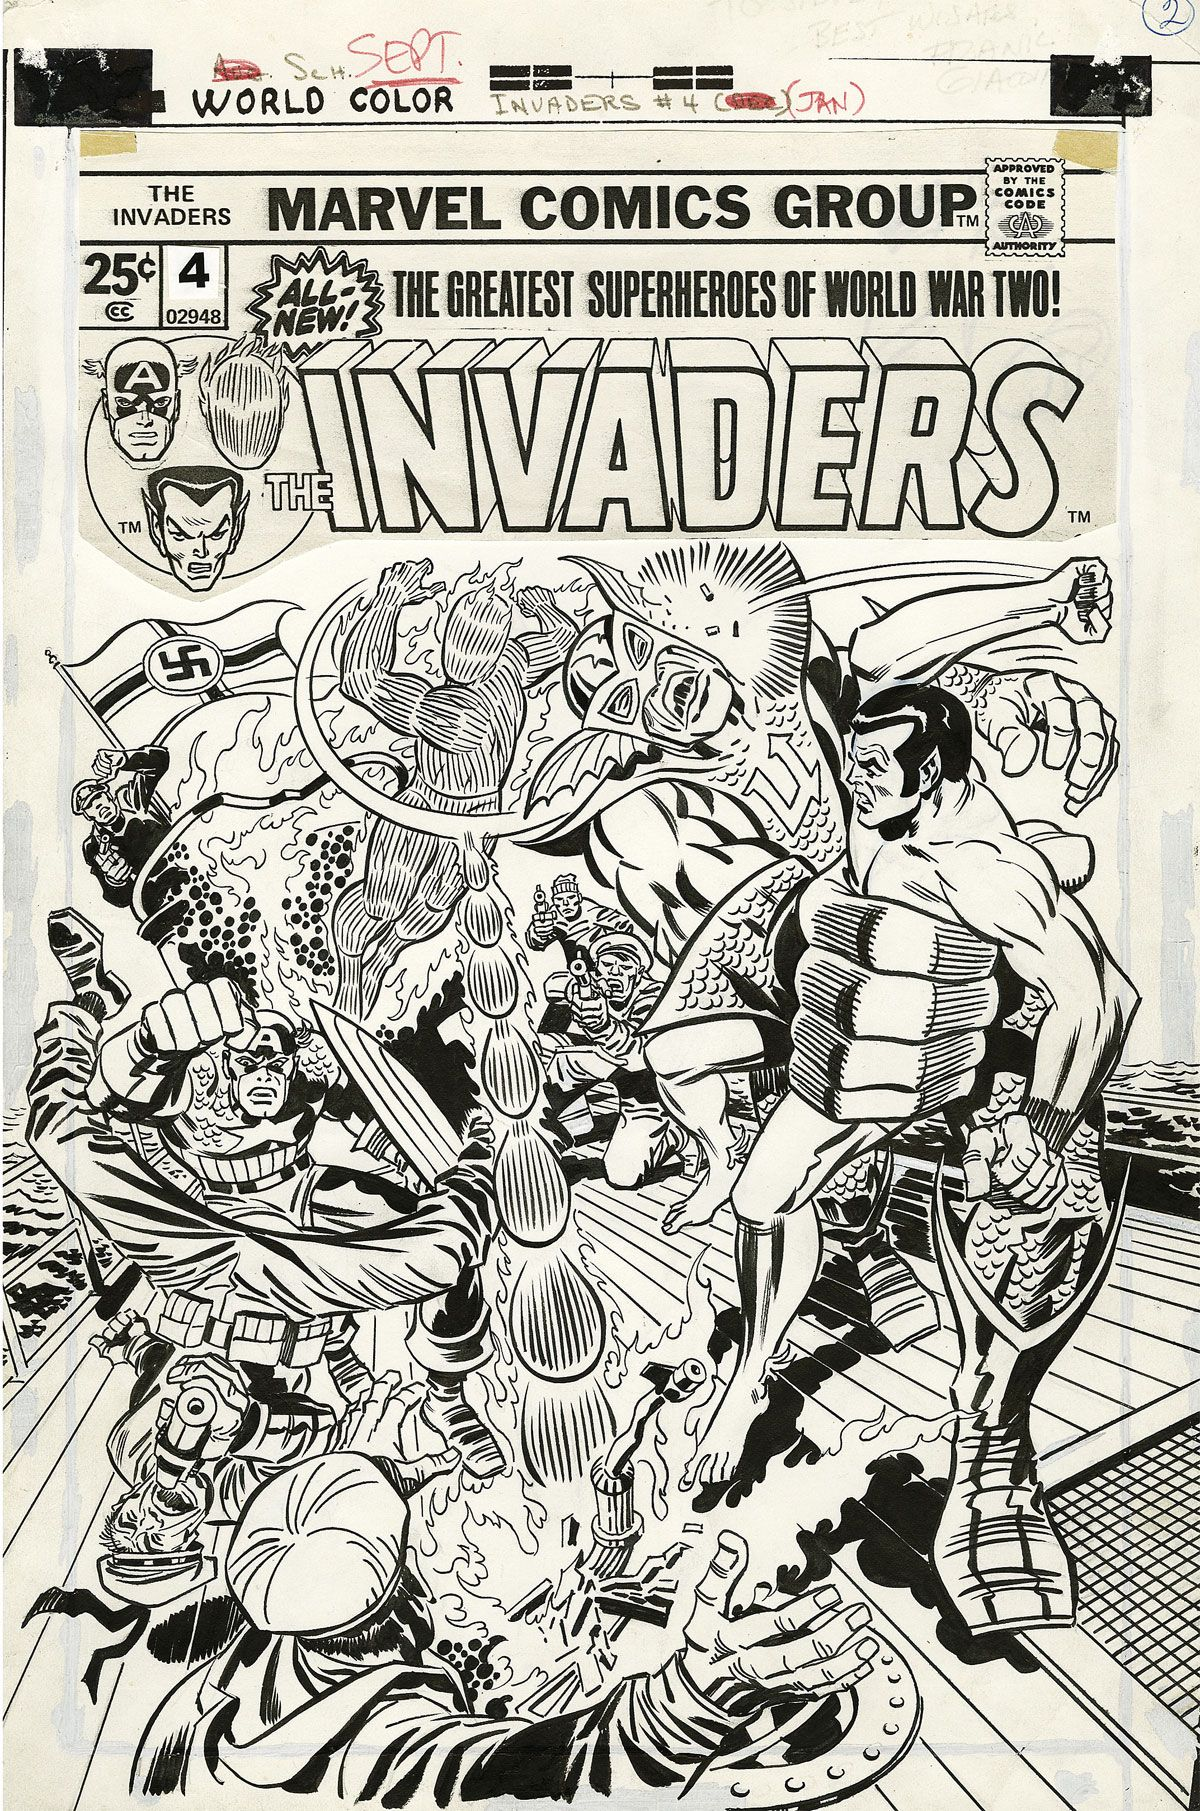 Original Art - Invaders # 04 Cover (1976) by Jack Kirby And Frank Giacoia